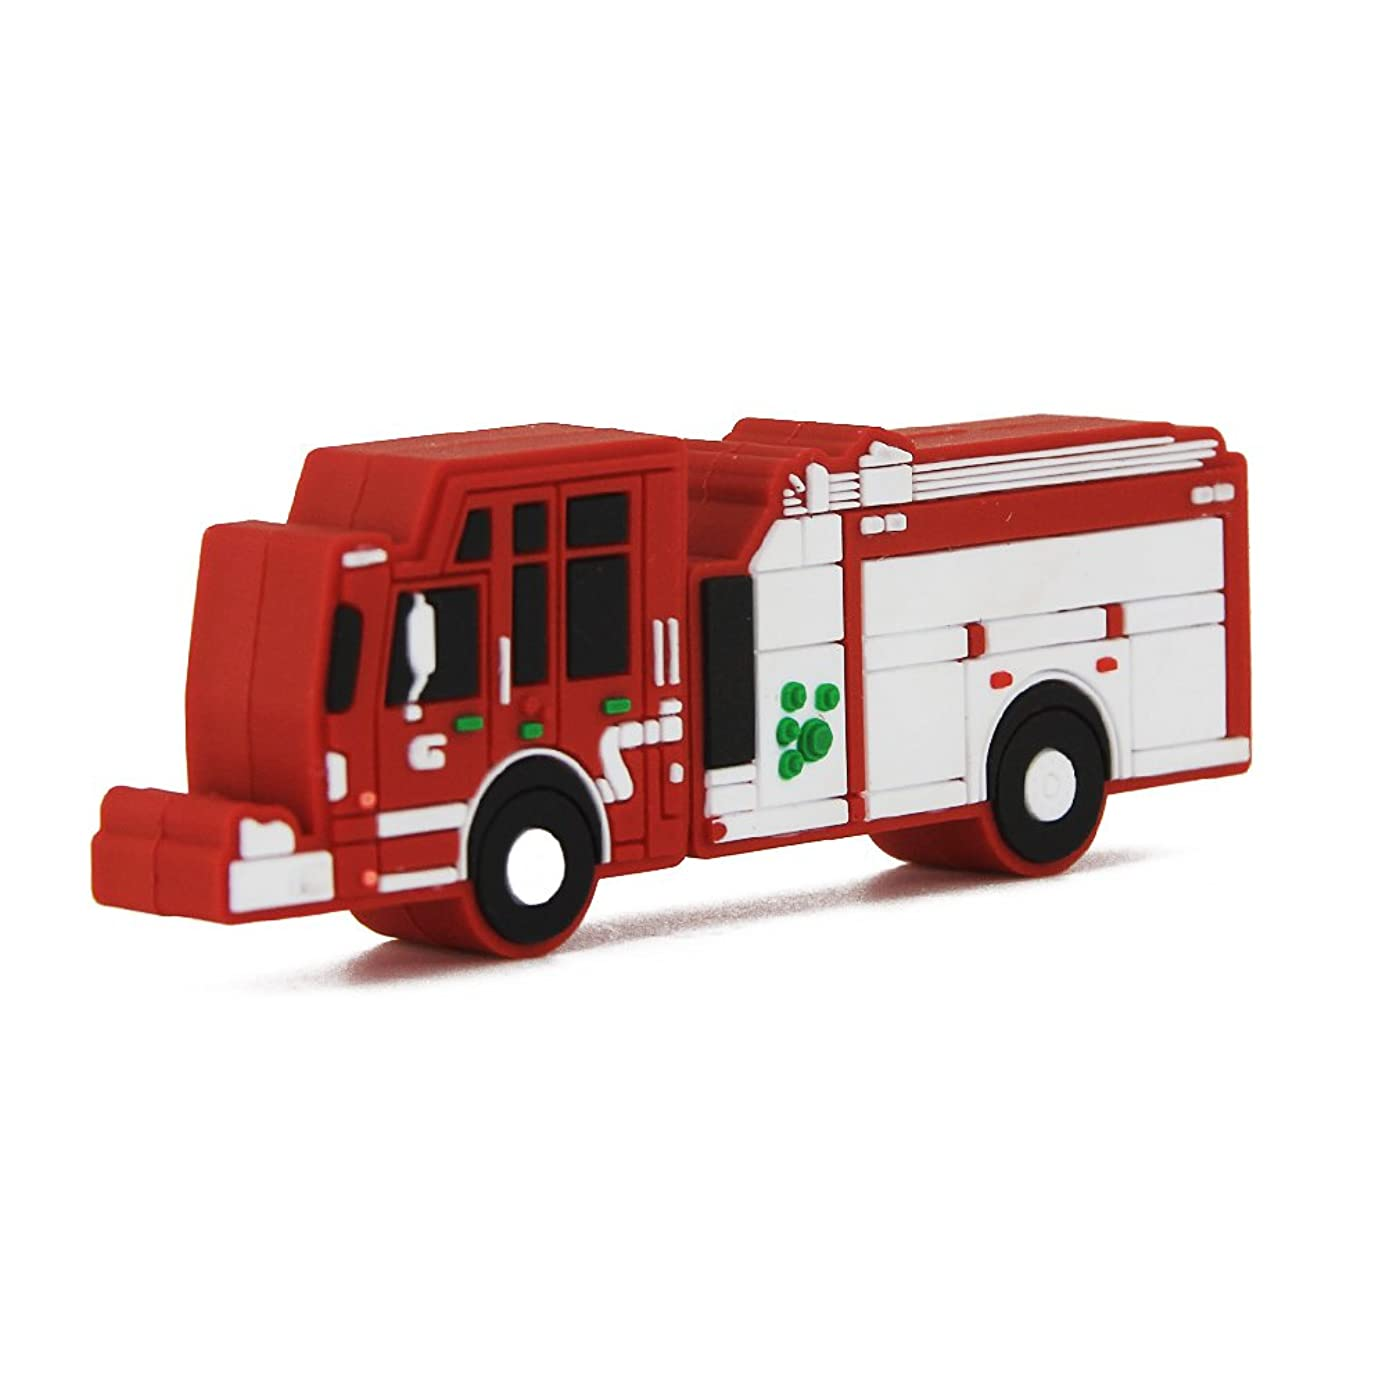 Usbkingdom 64GB USB 2.0 Flash Drive Cartoon Red Fire Truck Shape Pen Drive Memory Stick Thumb Drive Jump Drive Pendrive Flash Disk aae5931331